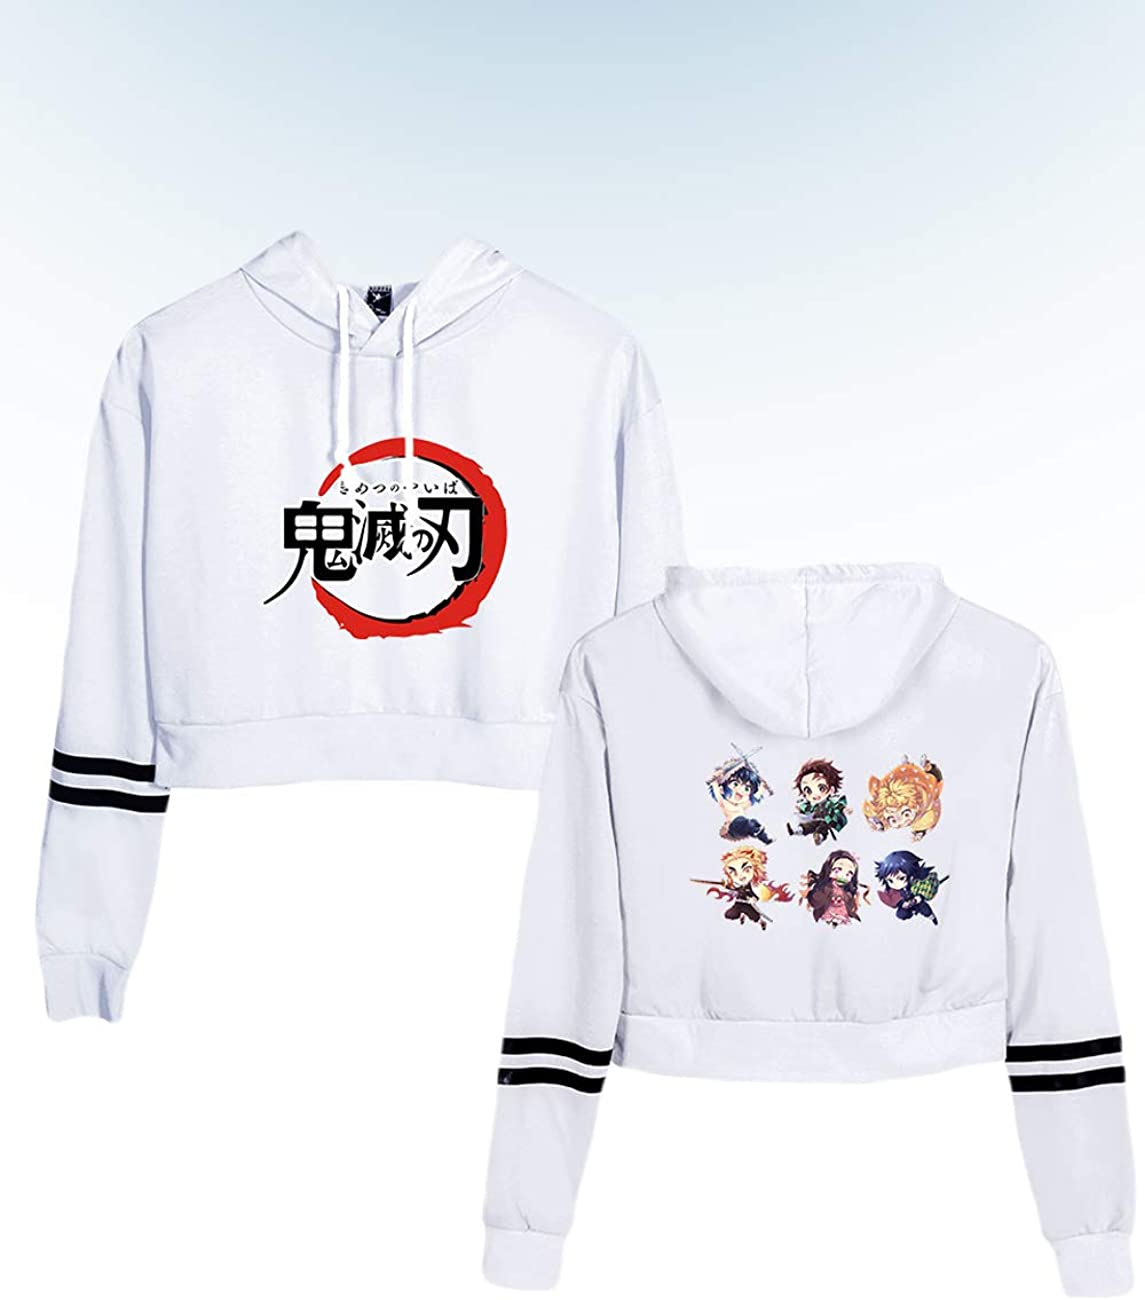 Womens Demon Slayer Cute Crop Top Hoodie Sweatshirt Sweater with Tanjirou Nezuko Inosuke Zenitsu Giyuu Graphic